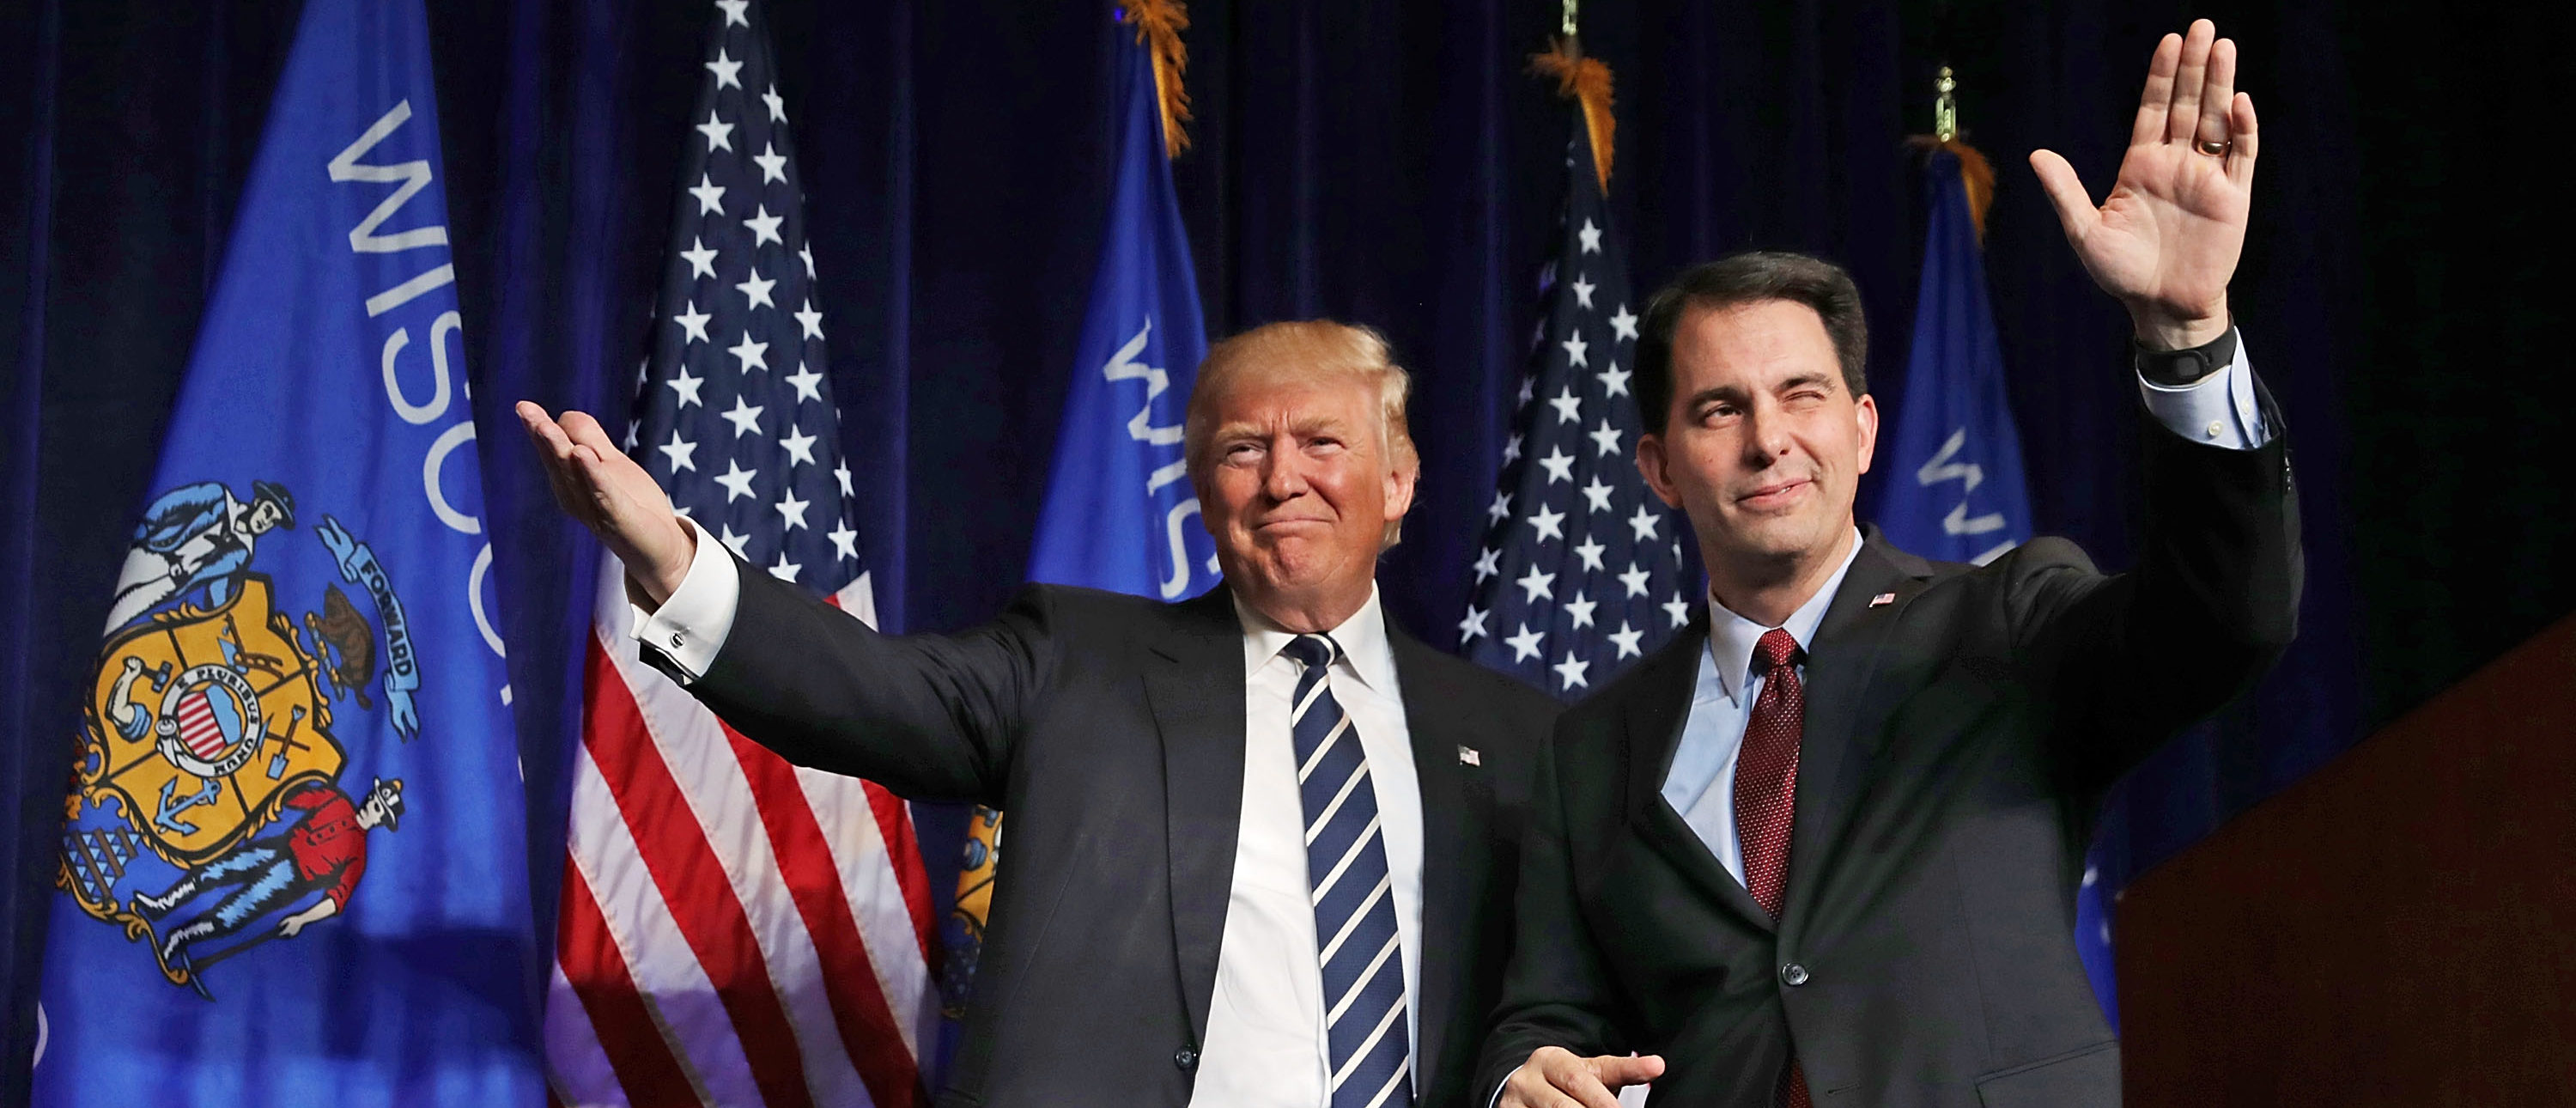 EAU CLAIRE, WI - NOVEMBER 01: Republican presidential nominee Donald Trump (L) is welcomed to the stage by Wisconsin Governor Scott Walker during a campaign rally at the W.L. Zorn Arena November 1, 2016 in Altoona, Wisconsin. Walker ran for the Republican nomination against Trump and eventually dropped out of the race for the presidency. (Photo by Chip Somodevilla/Getty Images)